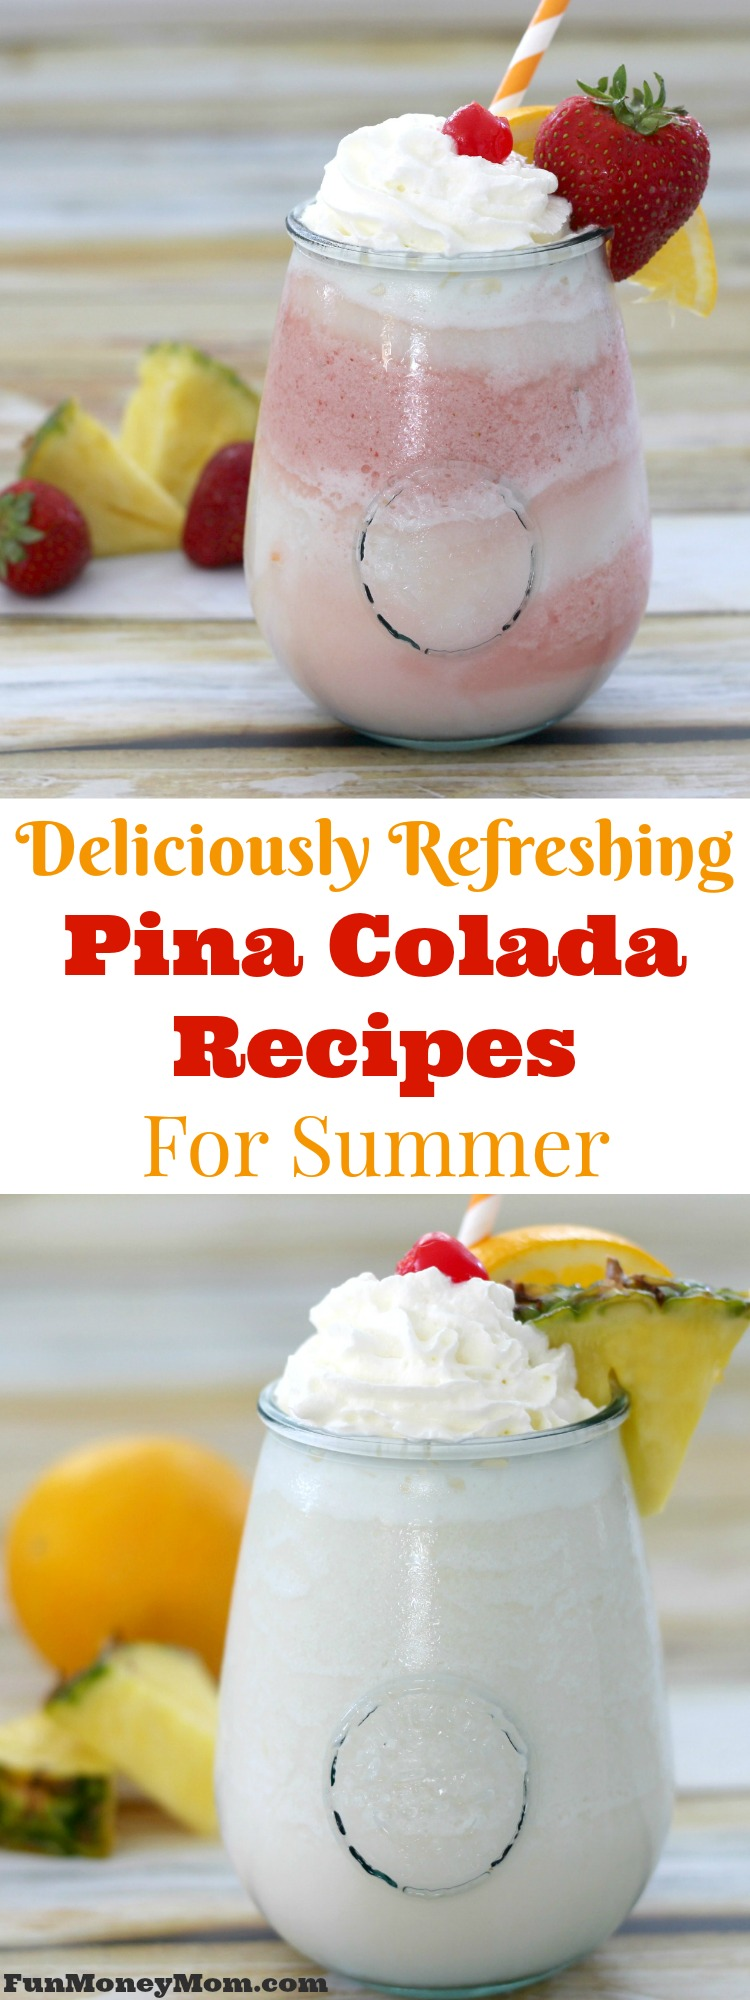 Not that you need an excuse to make pina colada recipes but I've got one for you anyway. It's National Pina Colada Day! So grab your blender and let's get celebrating with these delicious frozen cocktails!